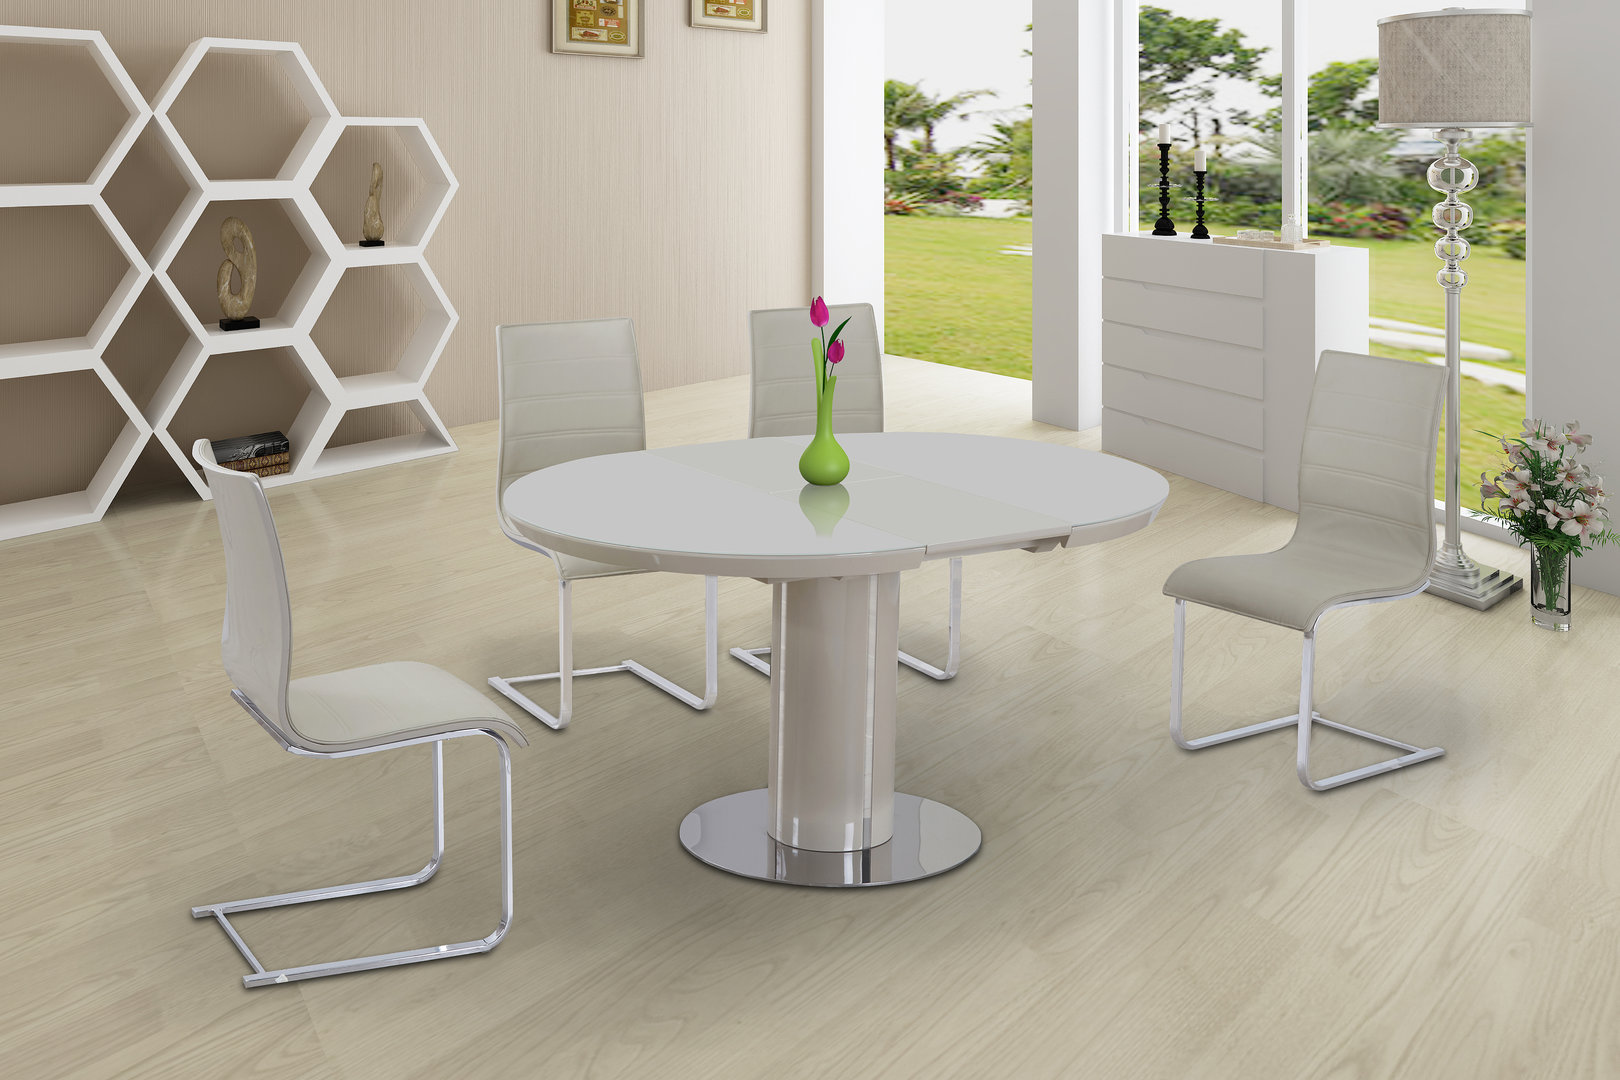 Round Cream Glass High Gloss Dining Table amp 6 Chairs  : CreamGlassHighGlossdiningtableand6CreamChairs from www.homegenies.co.uk size 1620 x 1080 jpeg 252kB